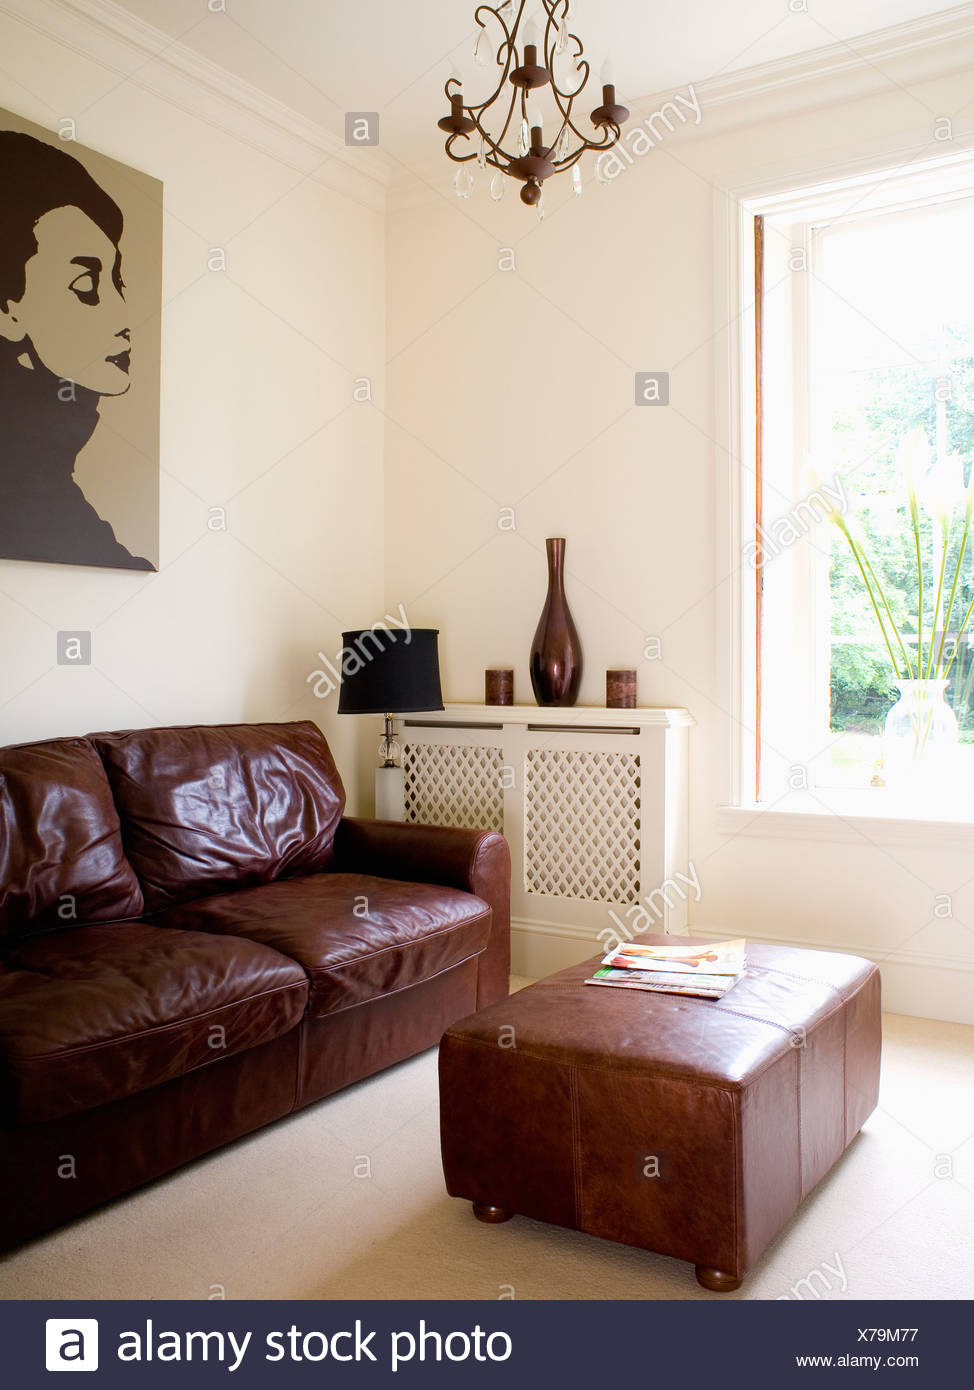 brown leather sofa and ottoman in modern cream living room X79M77